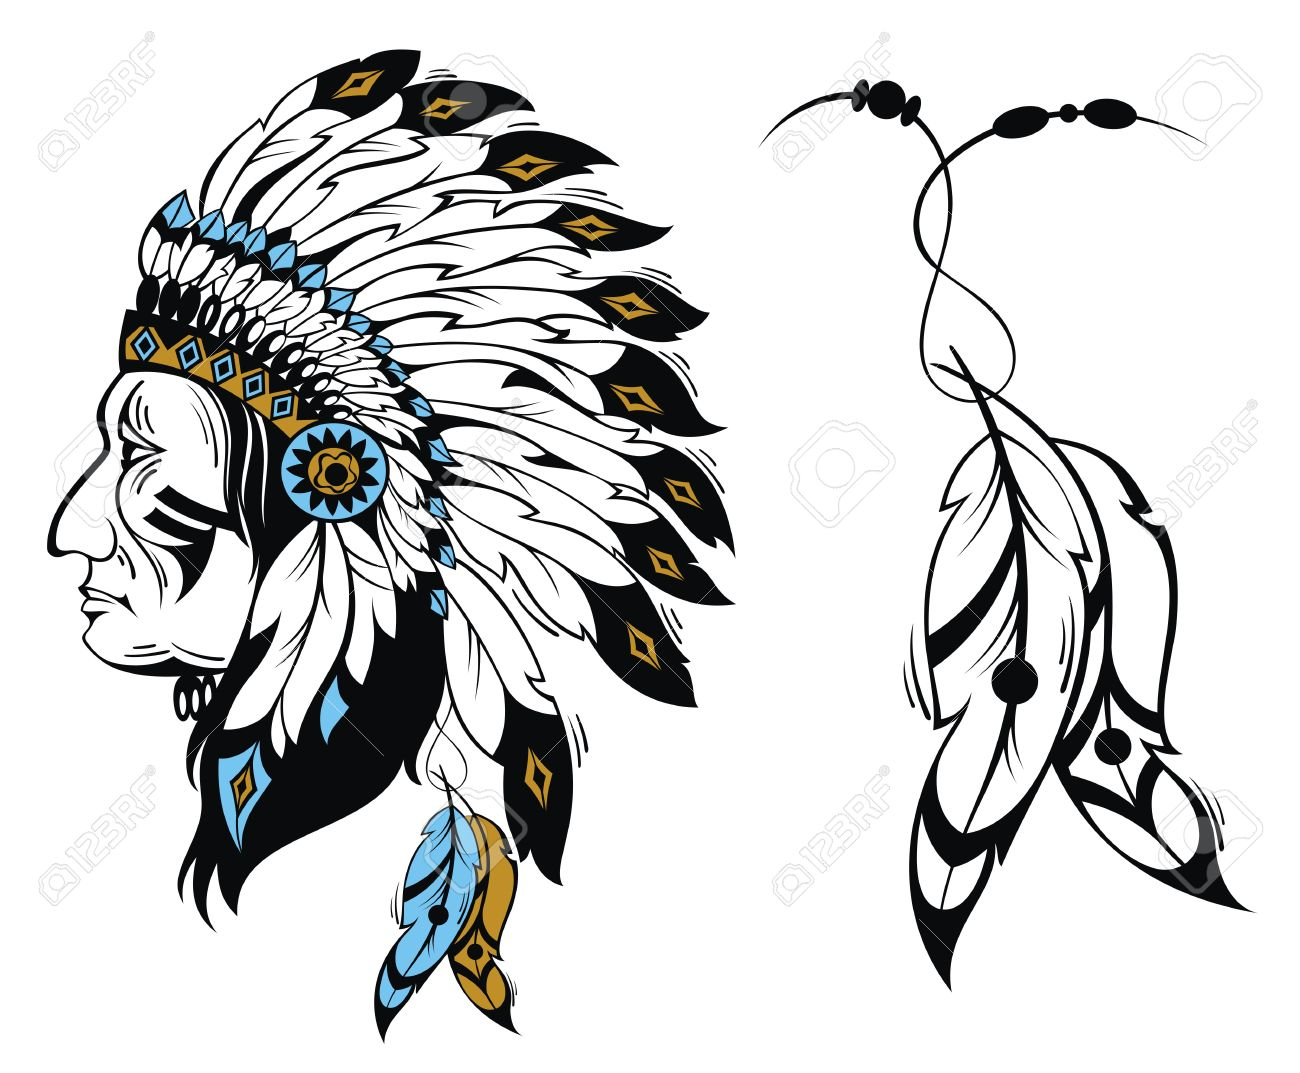 indian head silhouette at getdrawings com free for personal use rh getdrawings com indian head clip art free indian head clipart